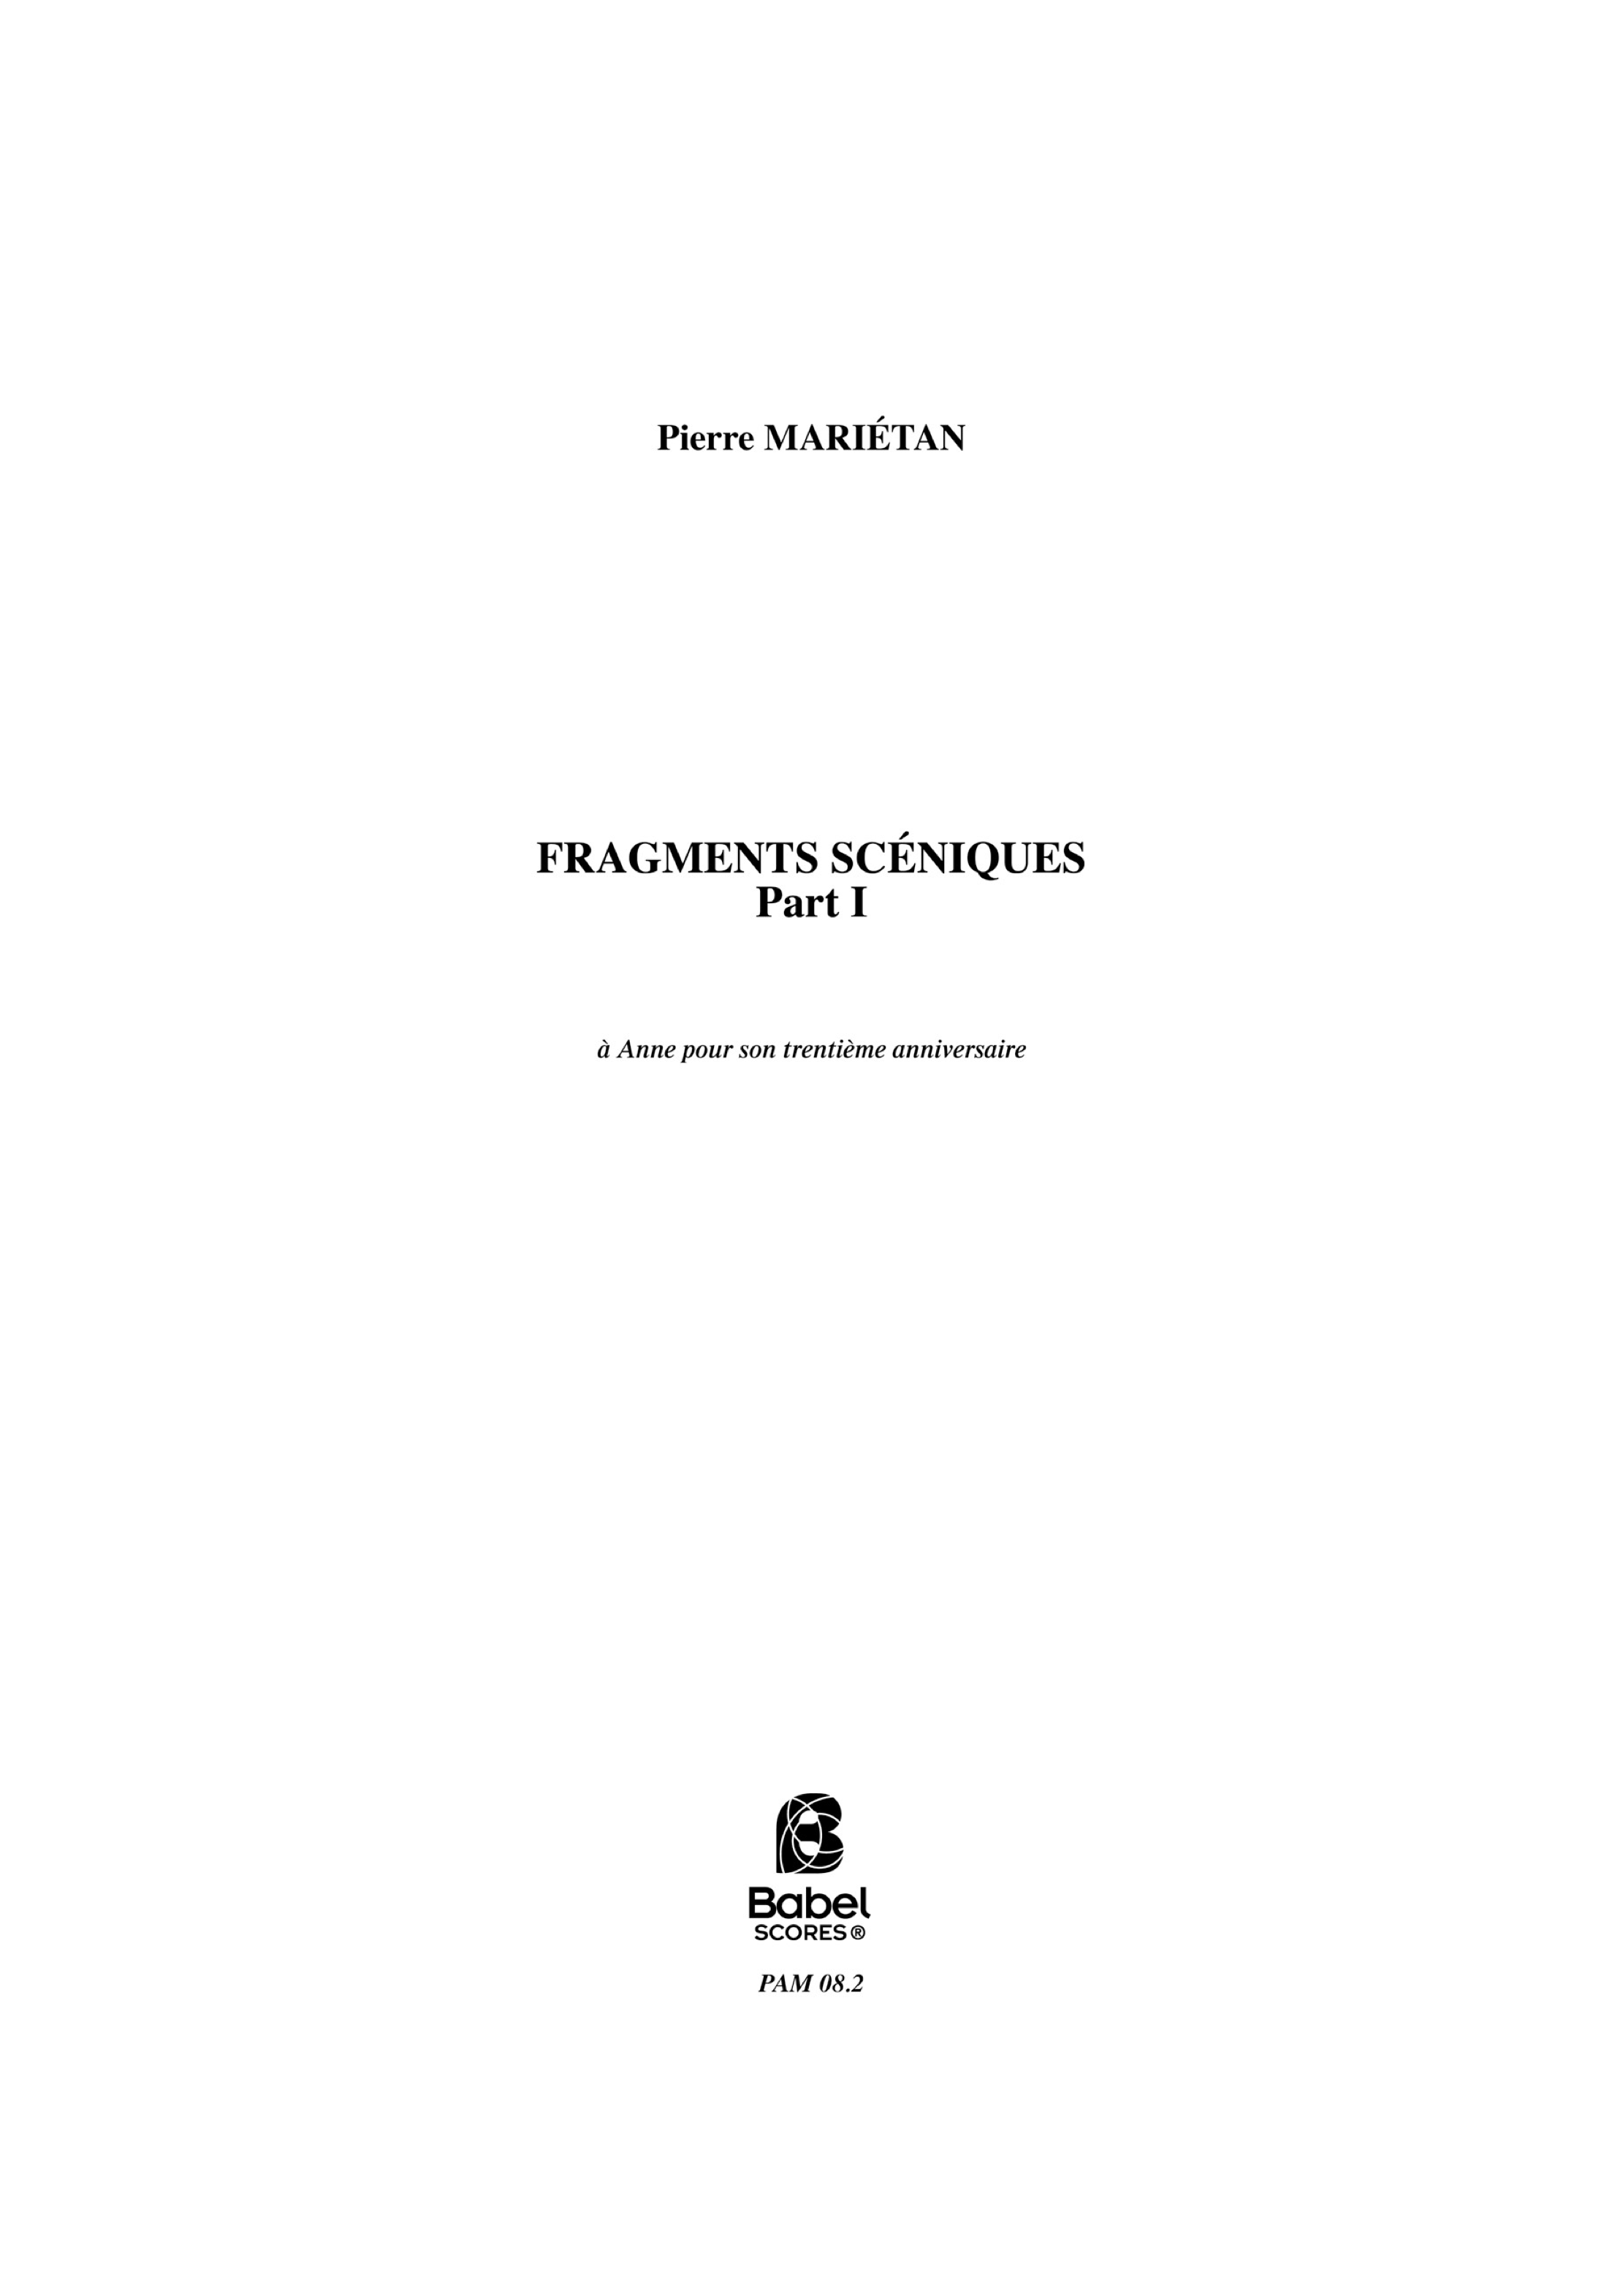 Fragmentssceniques z